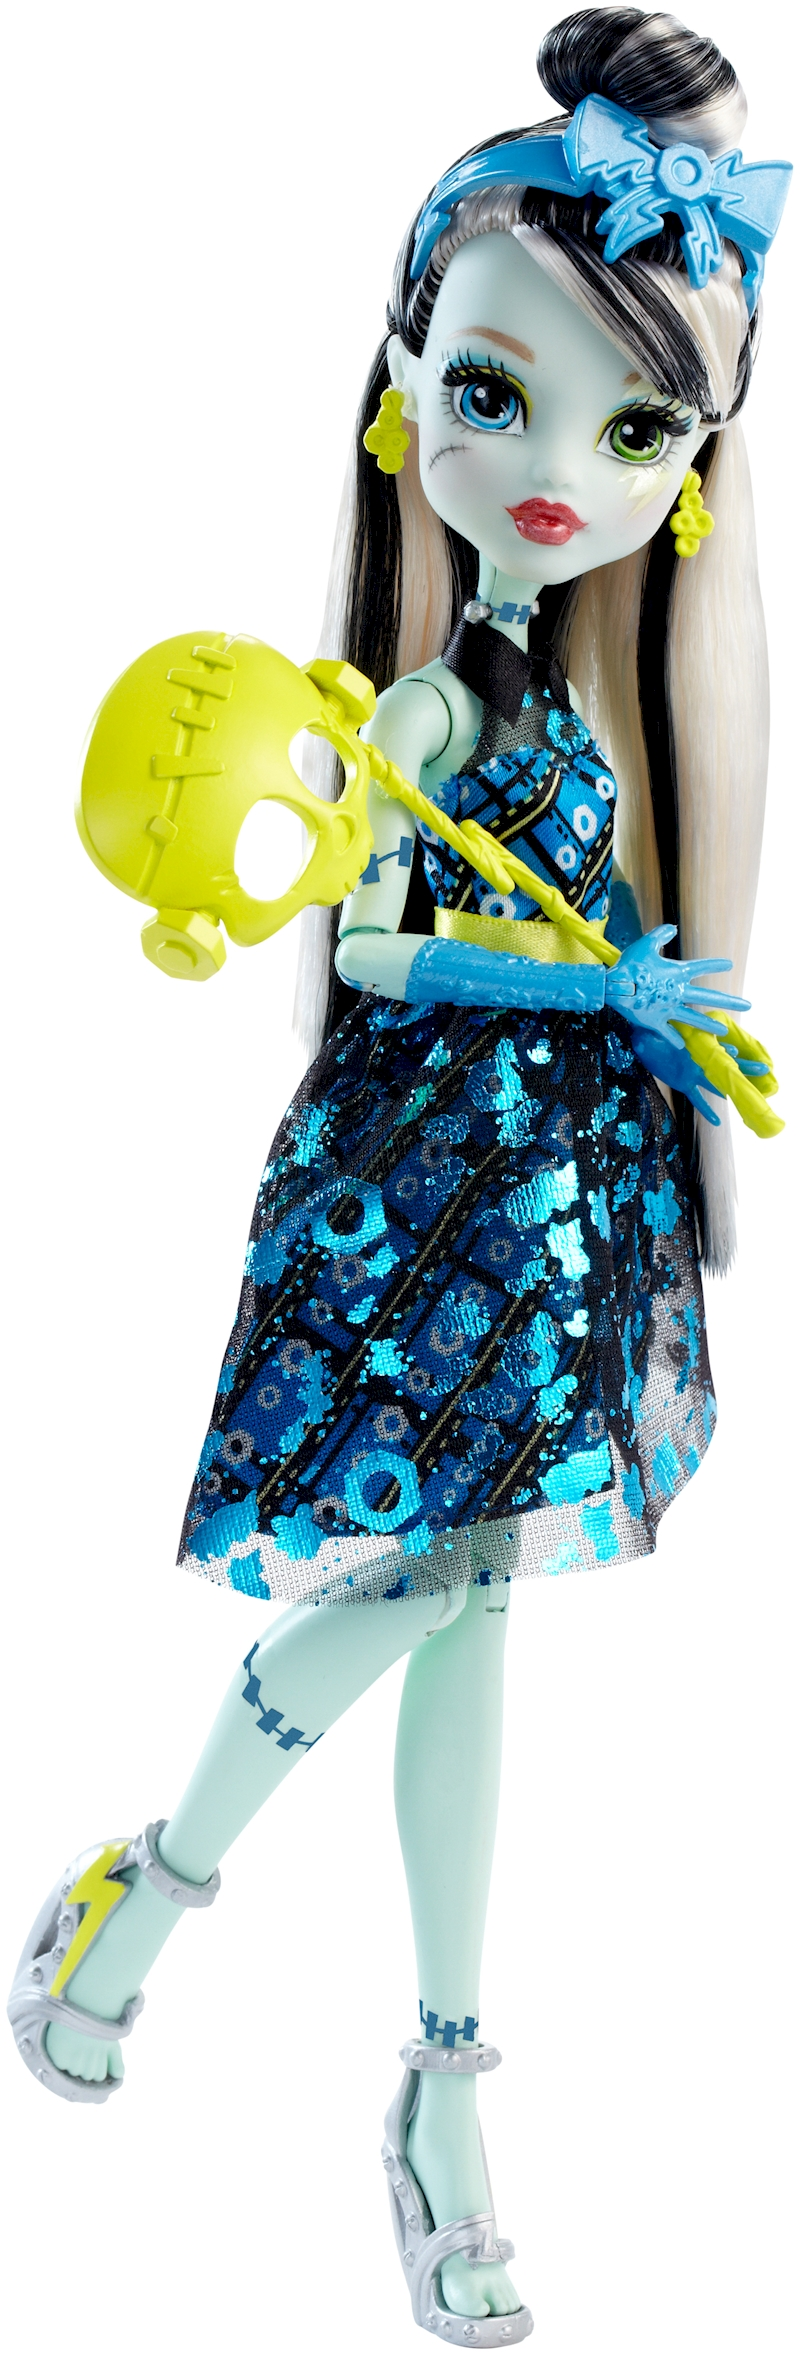 MONSTER HIGH® WELCOME TO MONSTER HIGH FRANKIE STEIN® DOLL ...